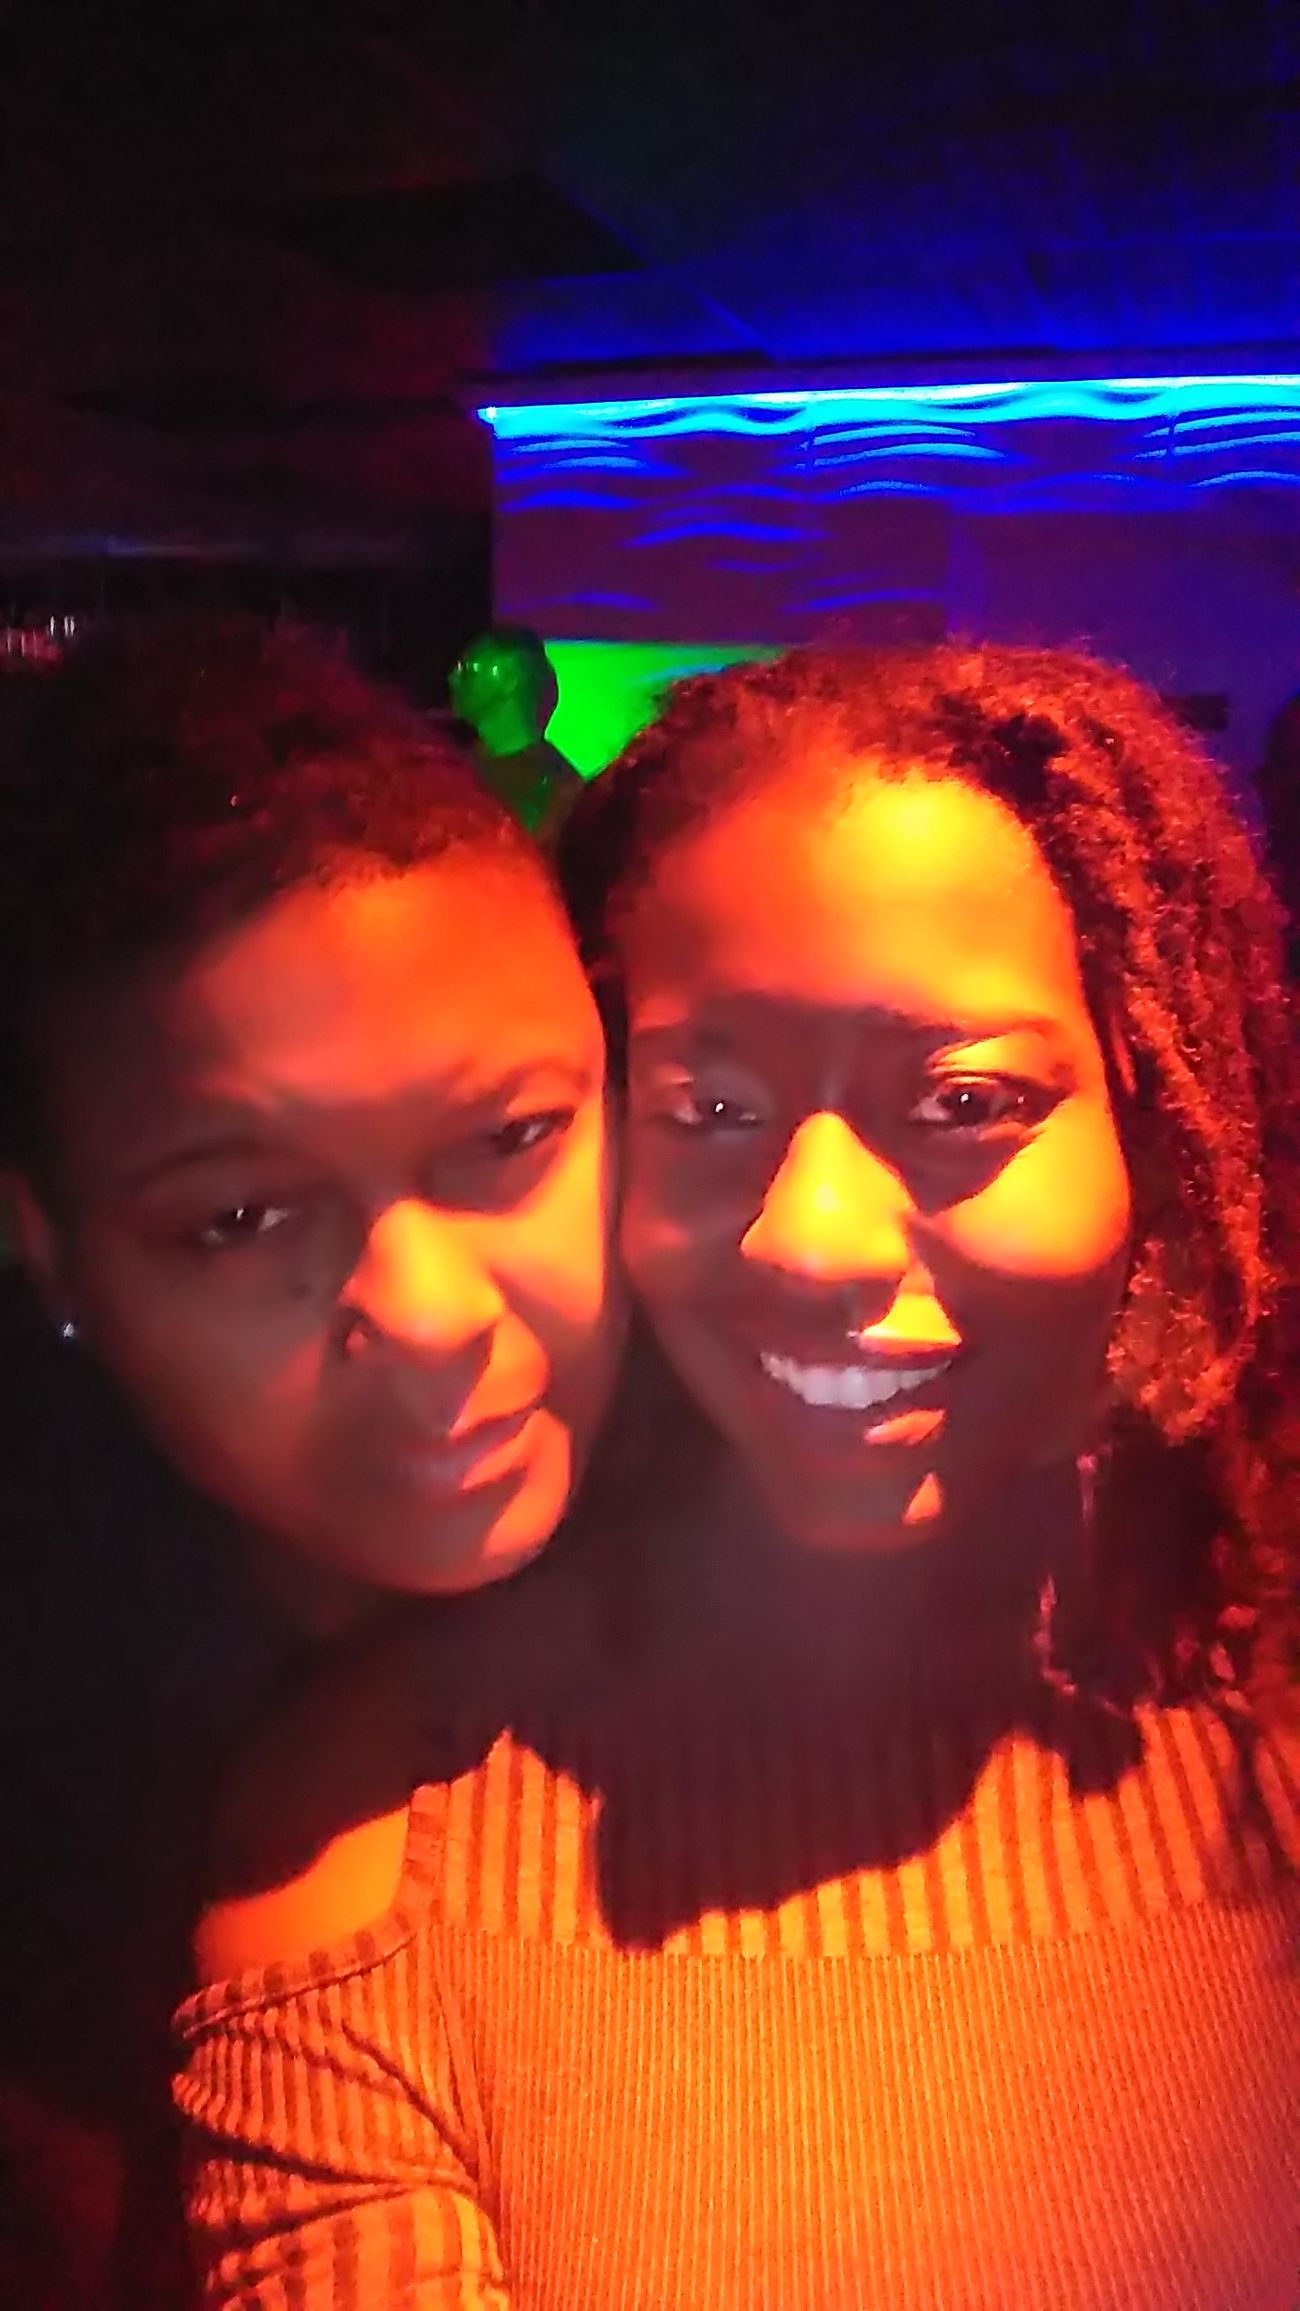 Two People Night Love Nightlife Looking At Camera Portrait Embracing Illuminated Girlswholovegirls Beautiful Woman Happiness Expressions Smiling Lesbian ♥ Celebration Togetherness Human Face Party - Social Event Human Body Part Close-up Red Lesbian Femmefatale Lifestyles Natural Hair